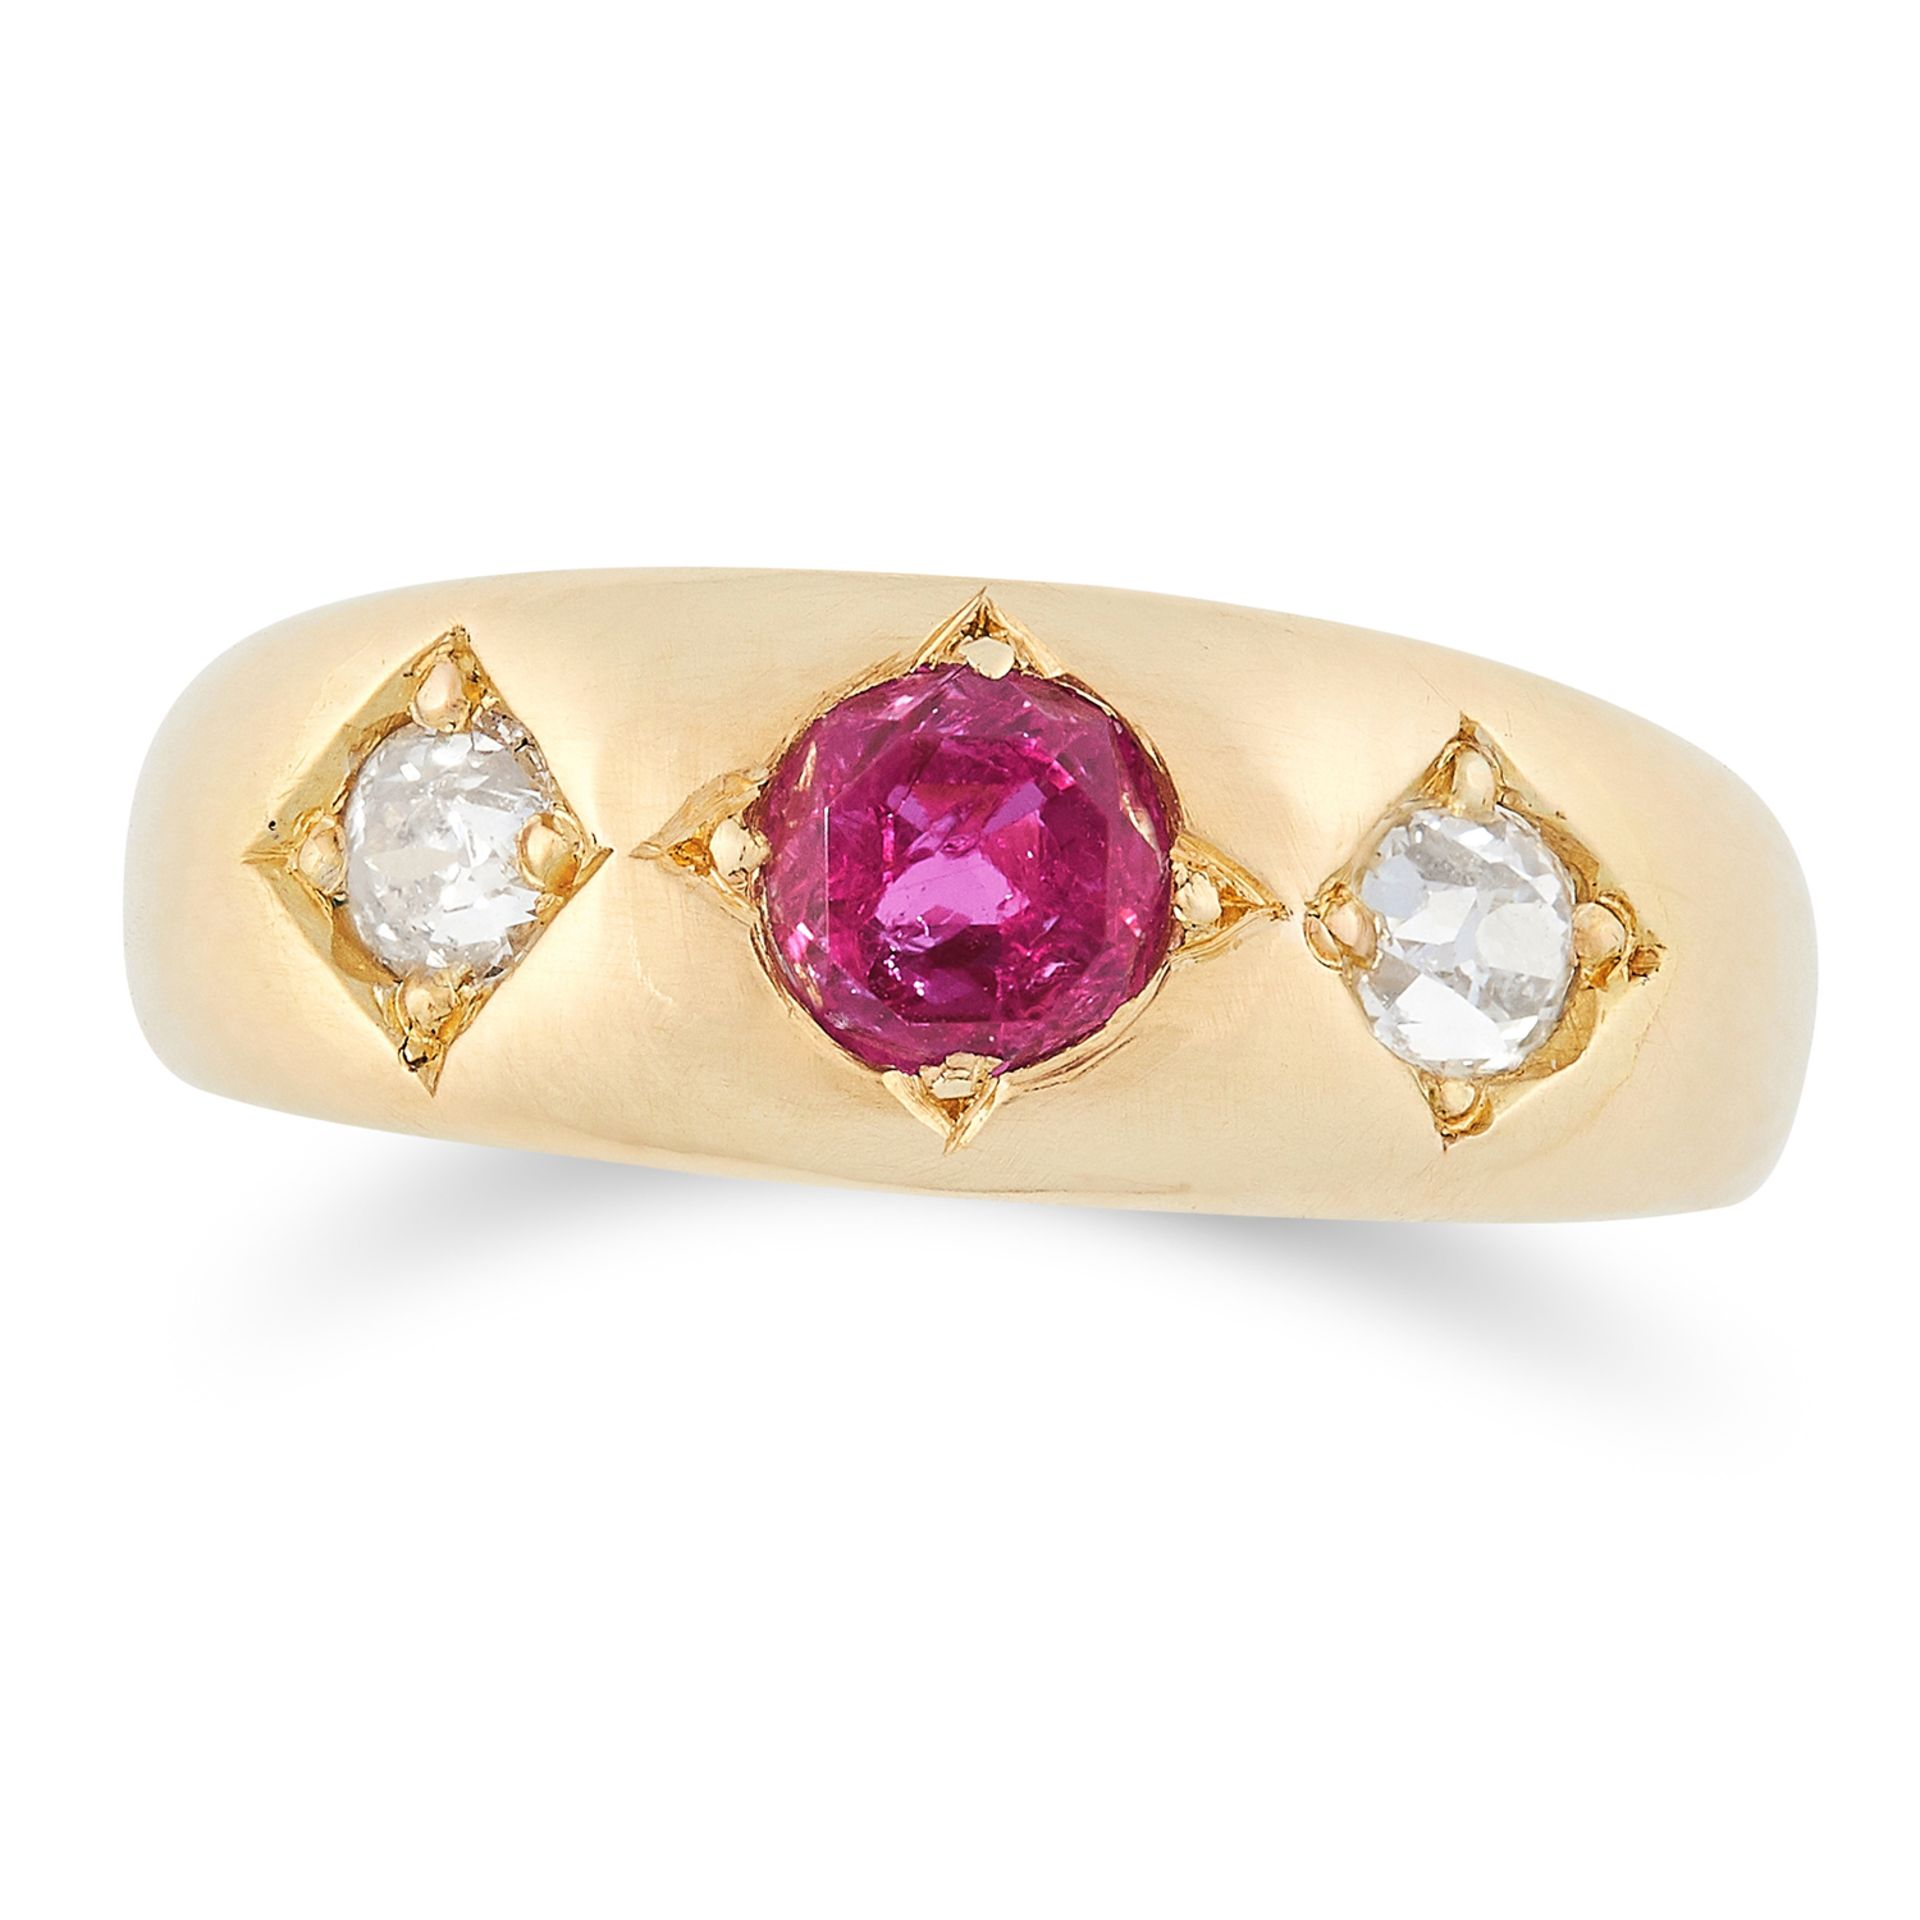 ANTIQUE RUBY AND DIAMOND THREE STONE RING set with a round cut ruby of approximately 0.68 carats